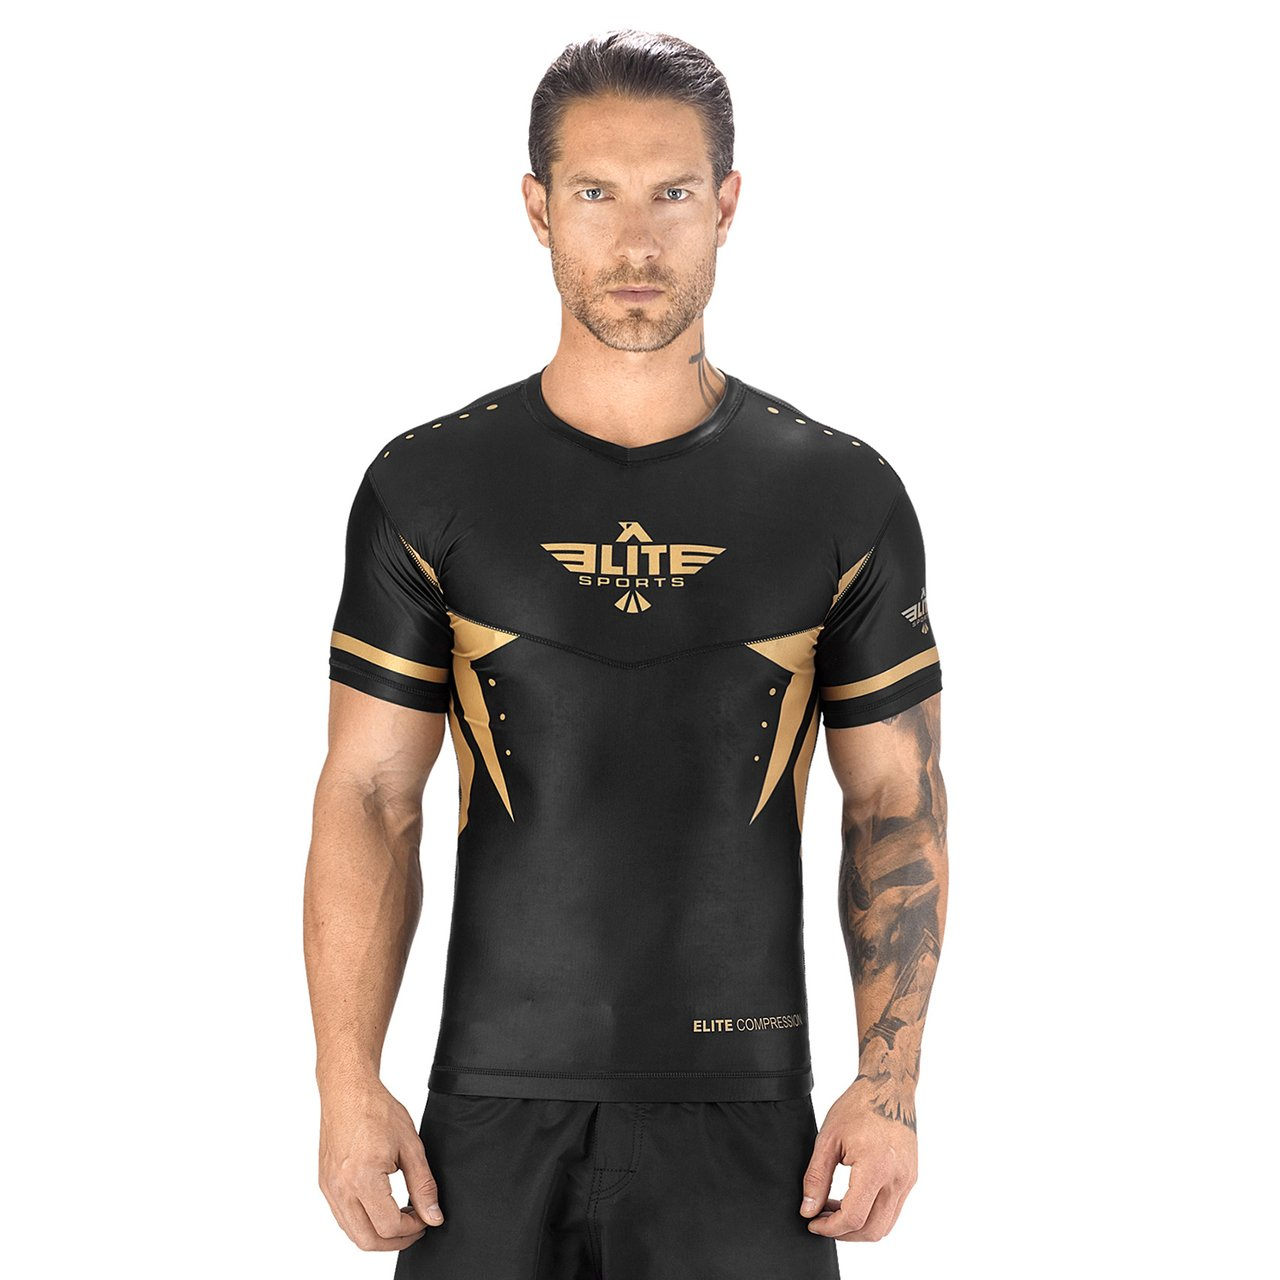 Load image into Gallery viewer, Elite Sports Star Series Sublimation Black/Gold Short Sleeve Rash Guard